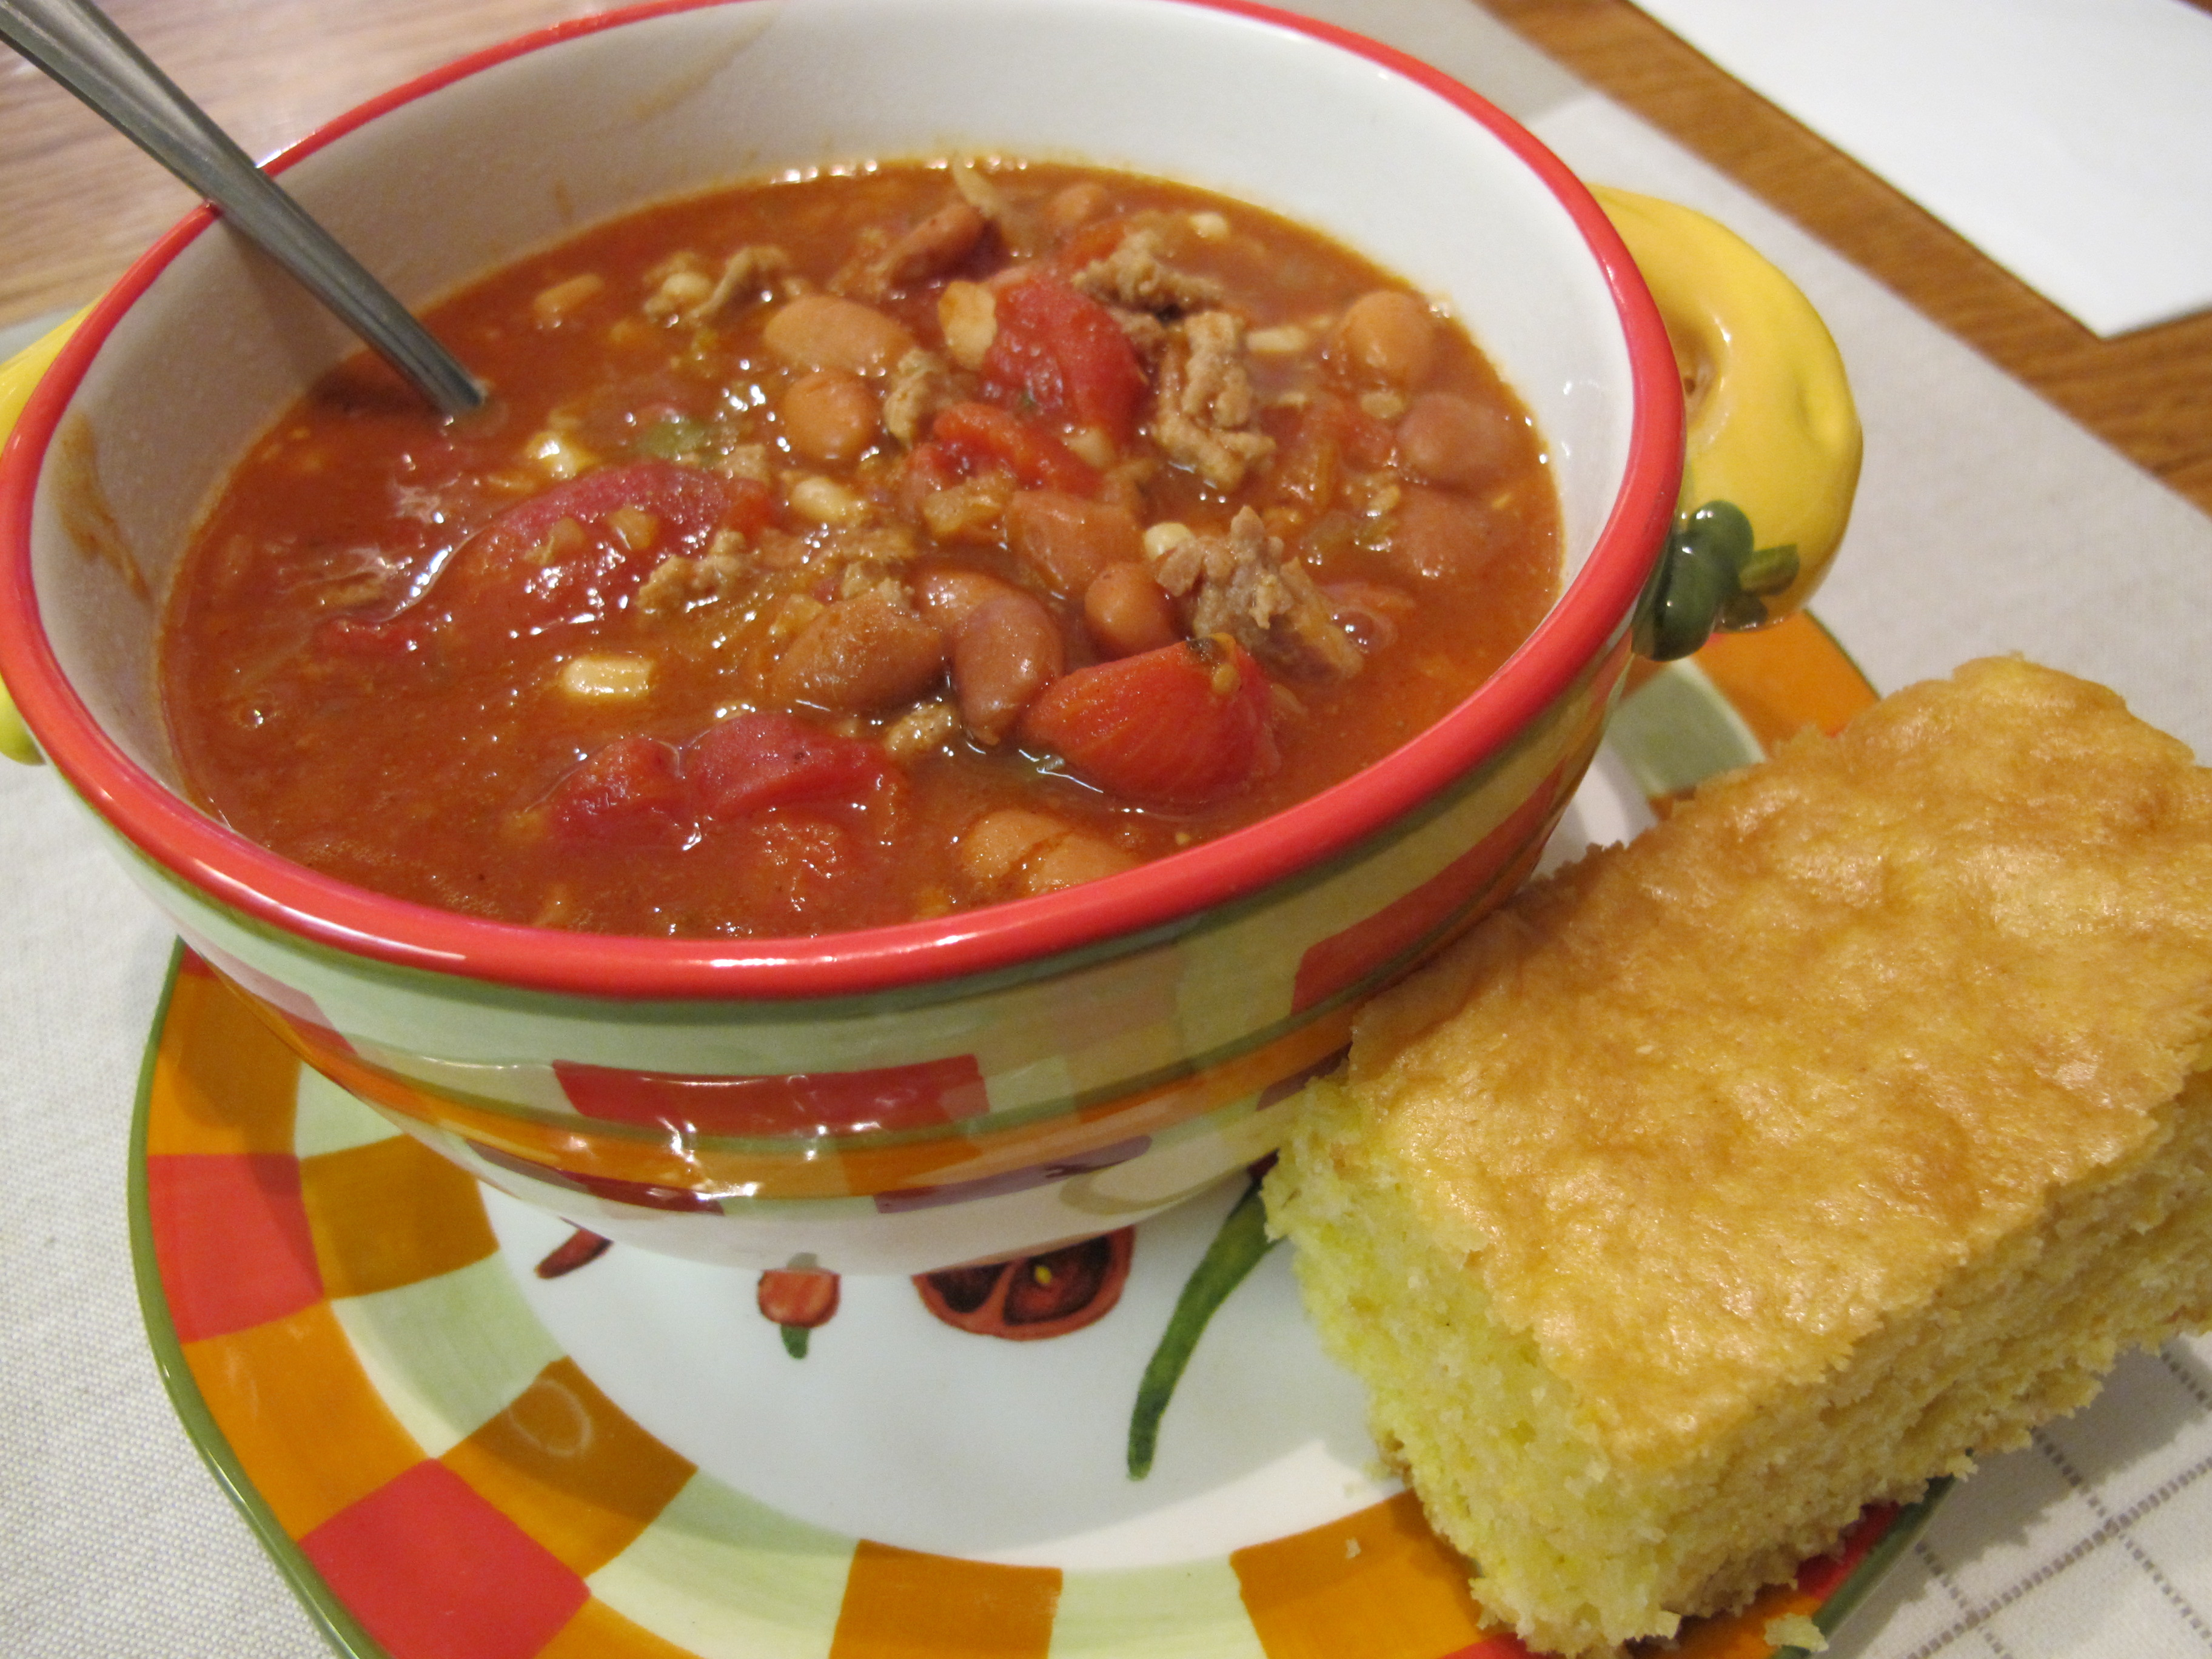 10 Can Taco Chili Soup | No Meals on Wheels